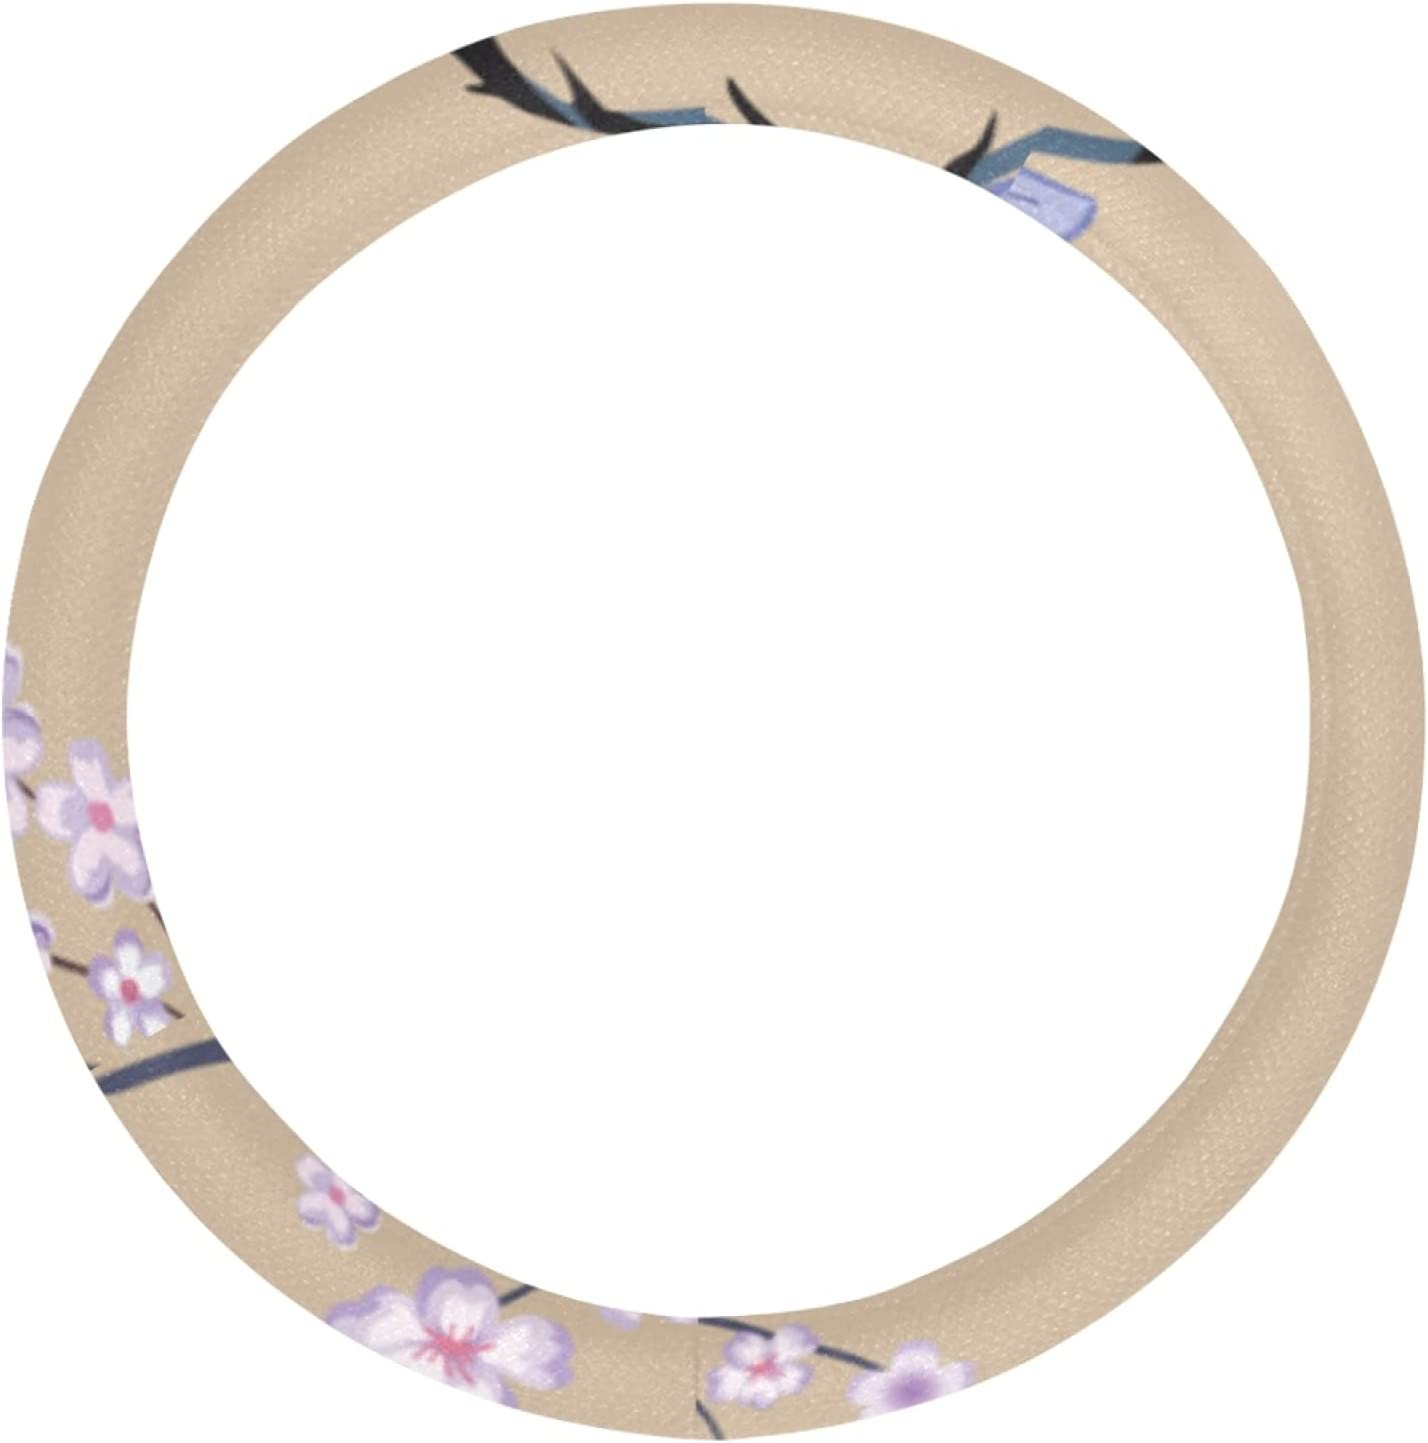 AIKENING Steering Wheel Cover Men Deer Blossoms Rare Cherry Unive and Clearance SALE! Limited time!